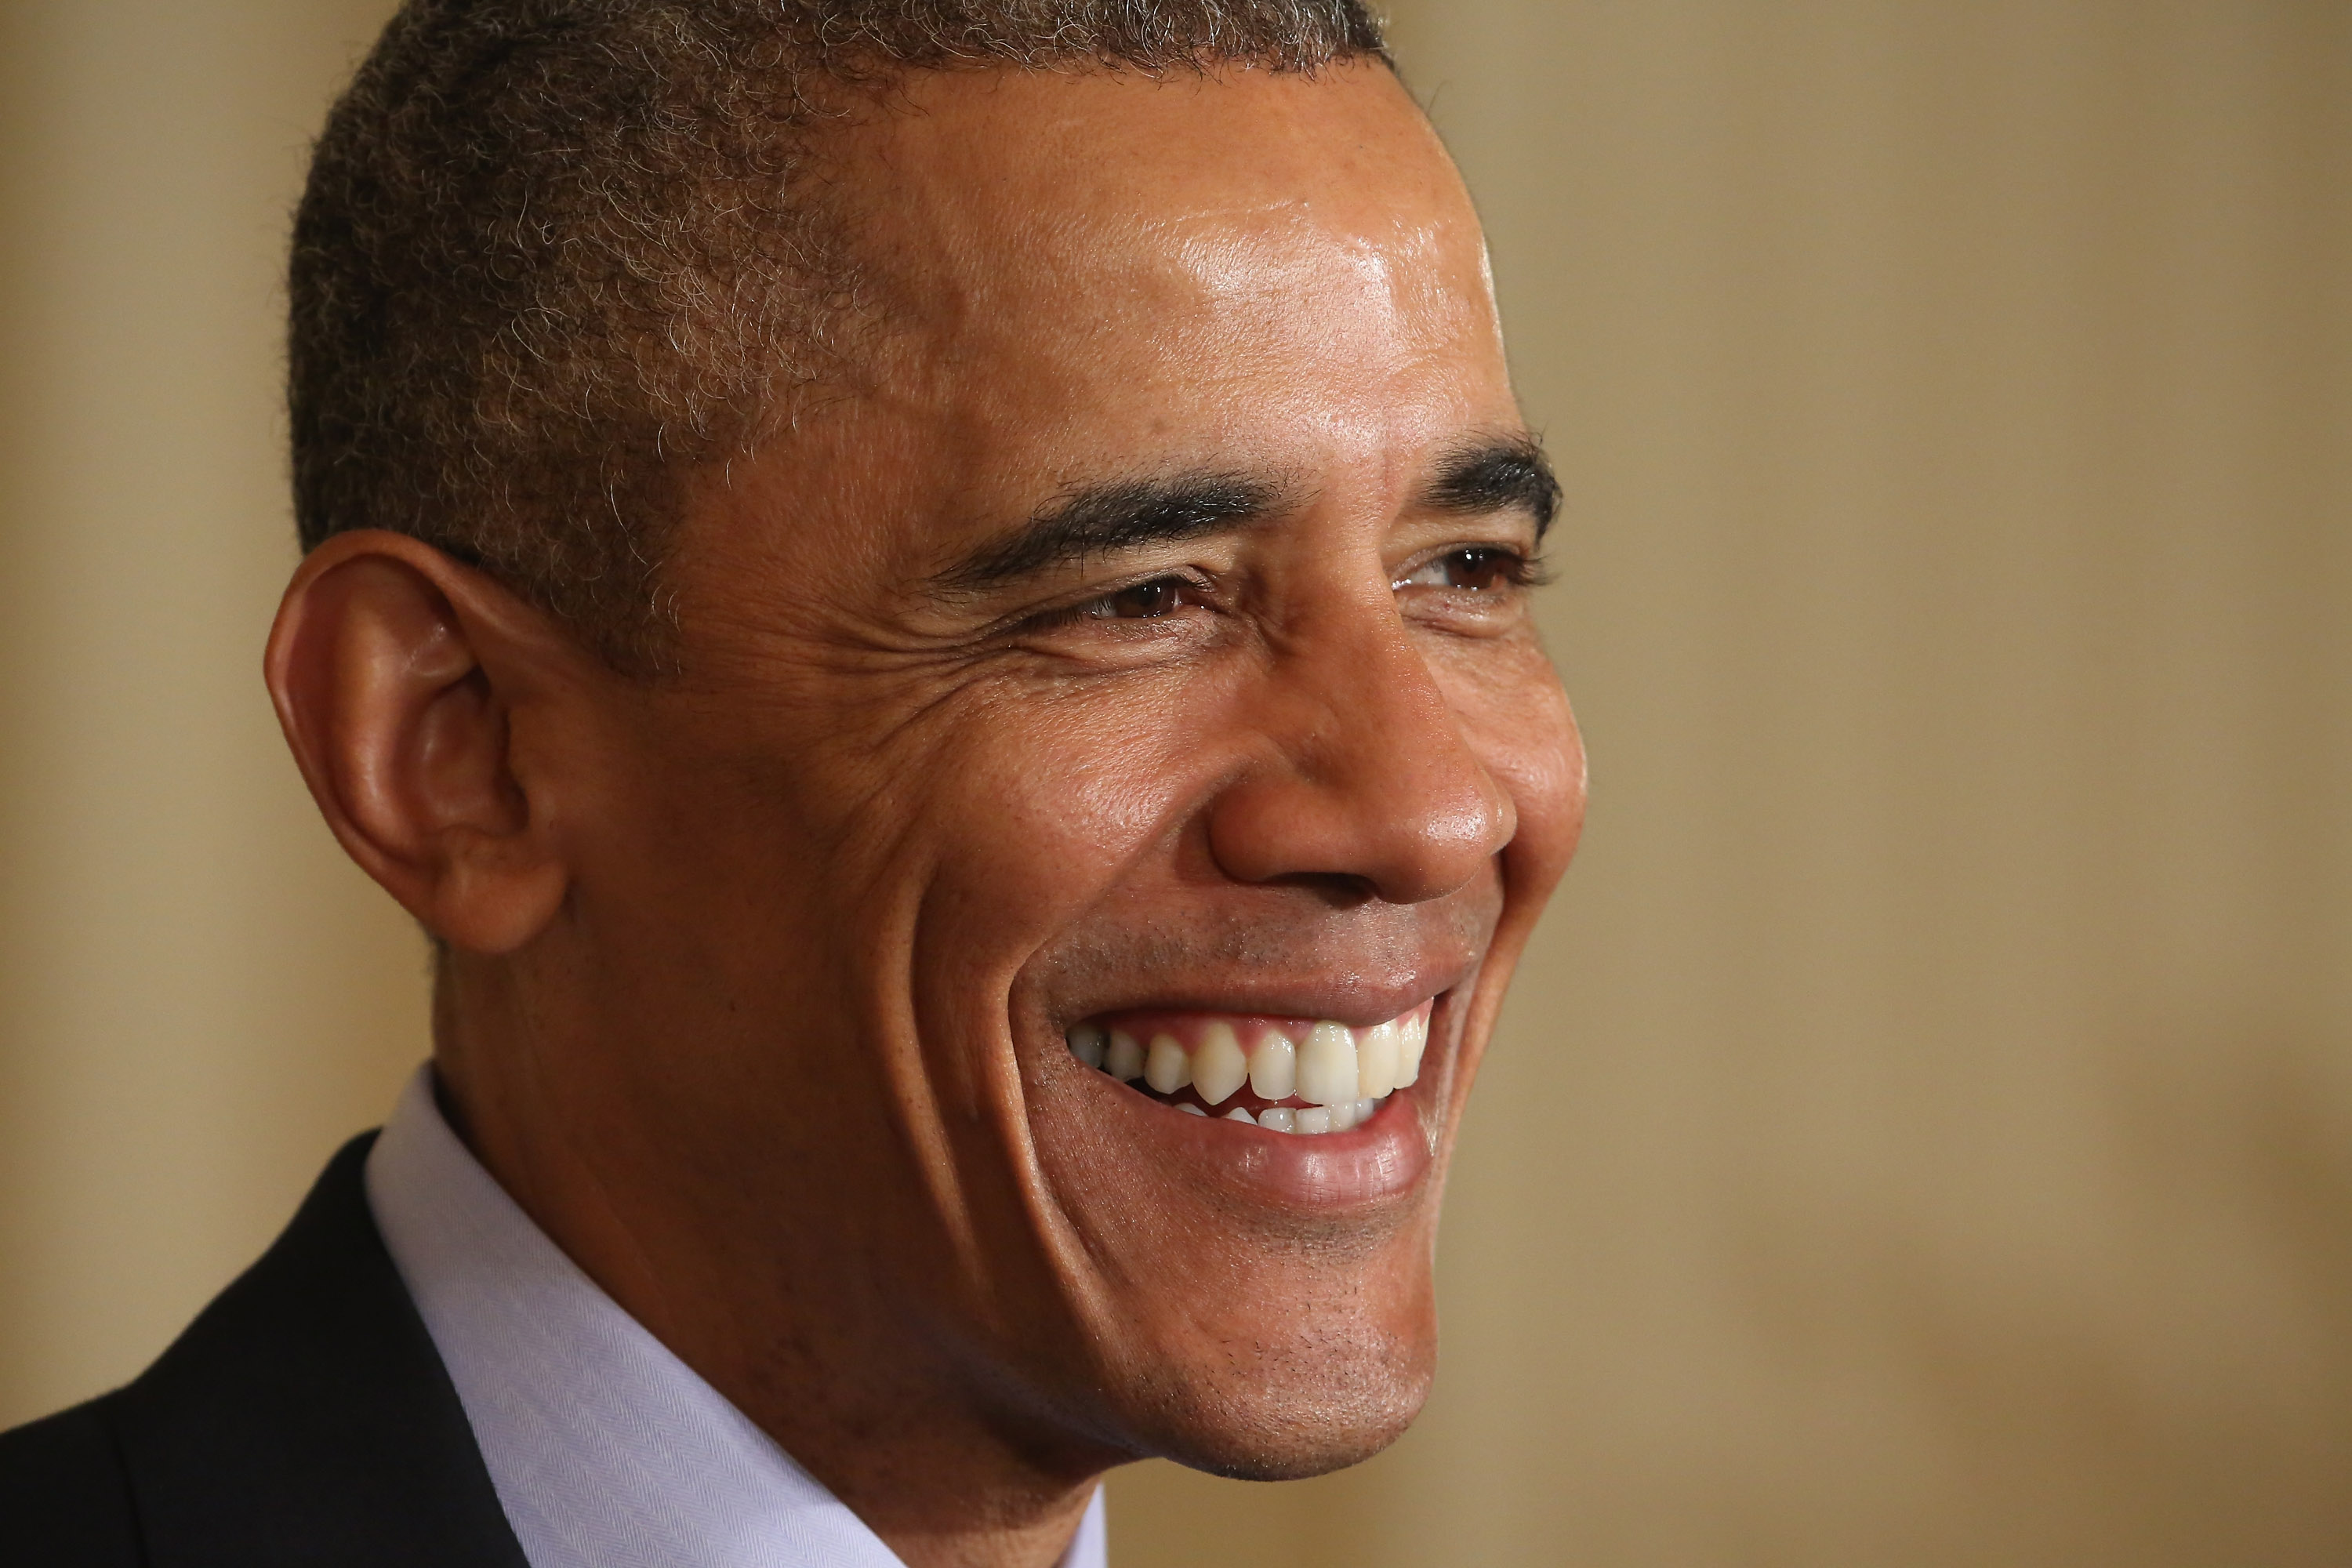 2015 was the first year 90 percent of Americans had health insurance. Thanks, Obama.